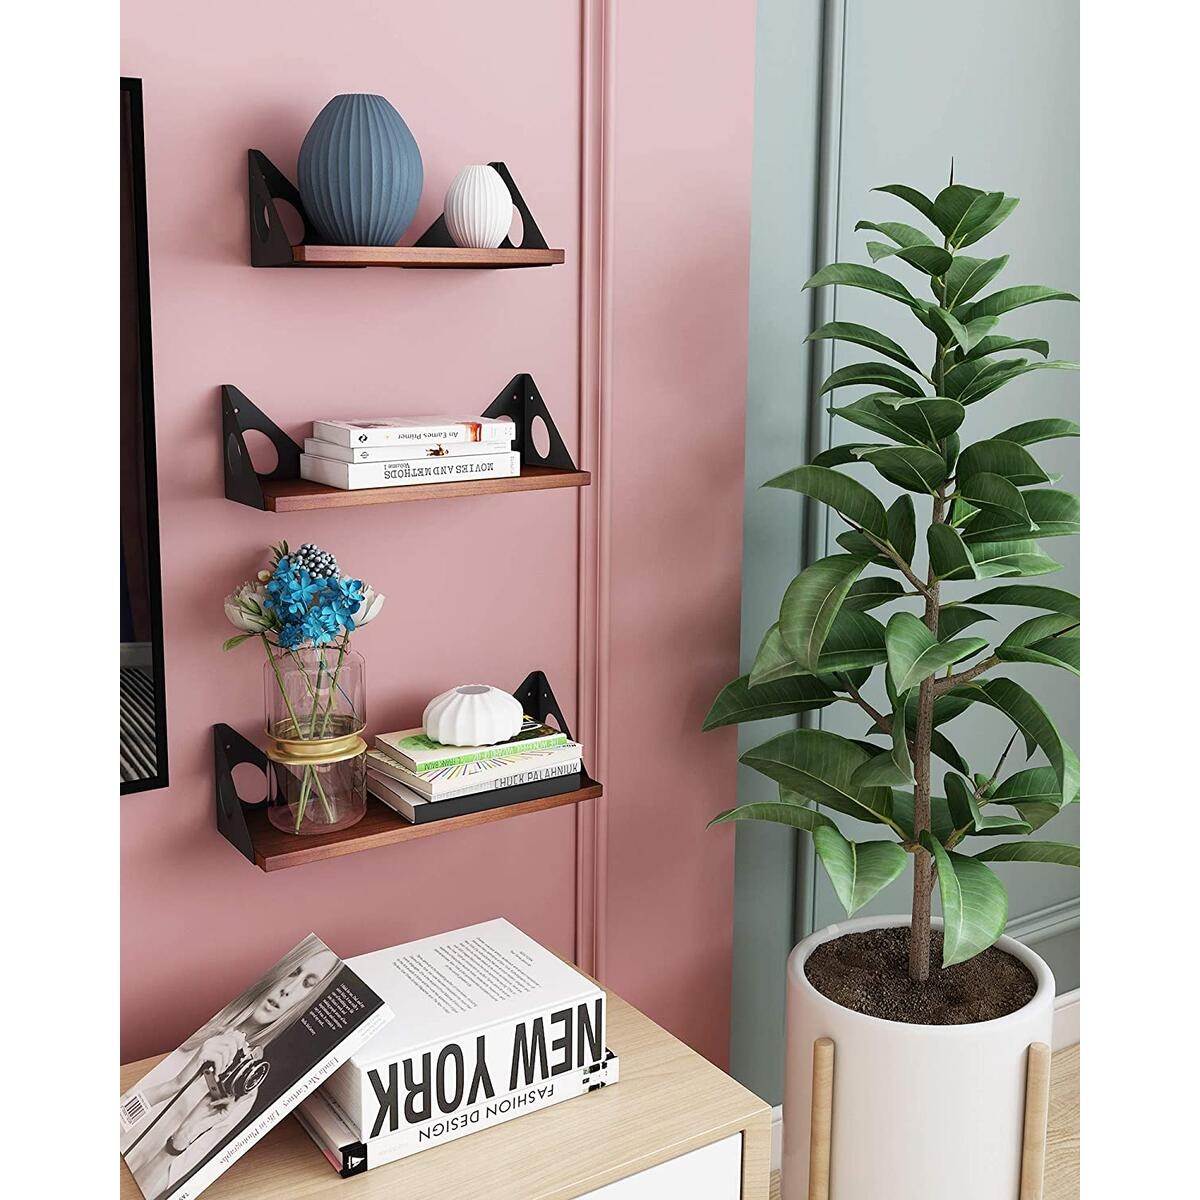 QooWare Floating Shelves Wall Mounted Set of 3, Rustic Wood Wall Shelves for Bathroom, Bedroom, Kitchen, Office, Living Room, Office - Brown